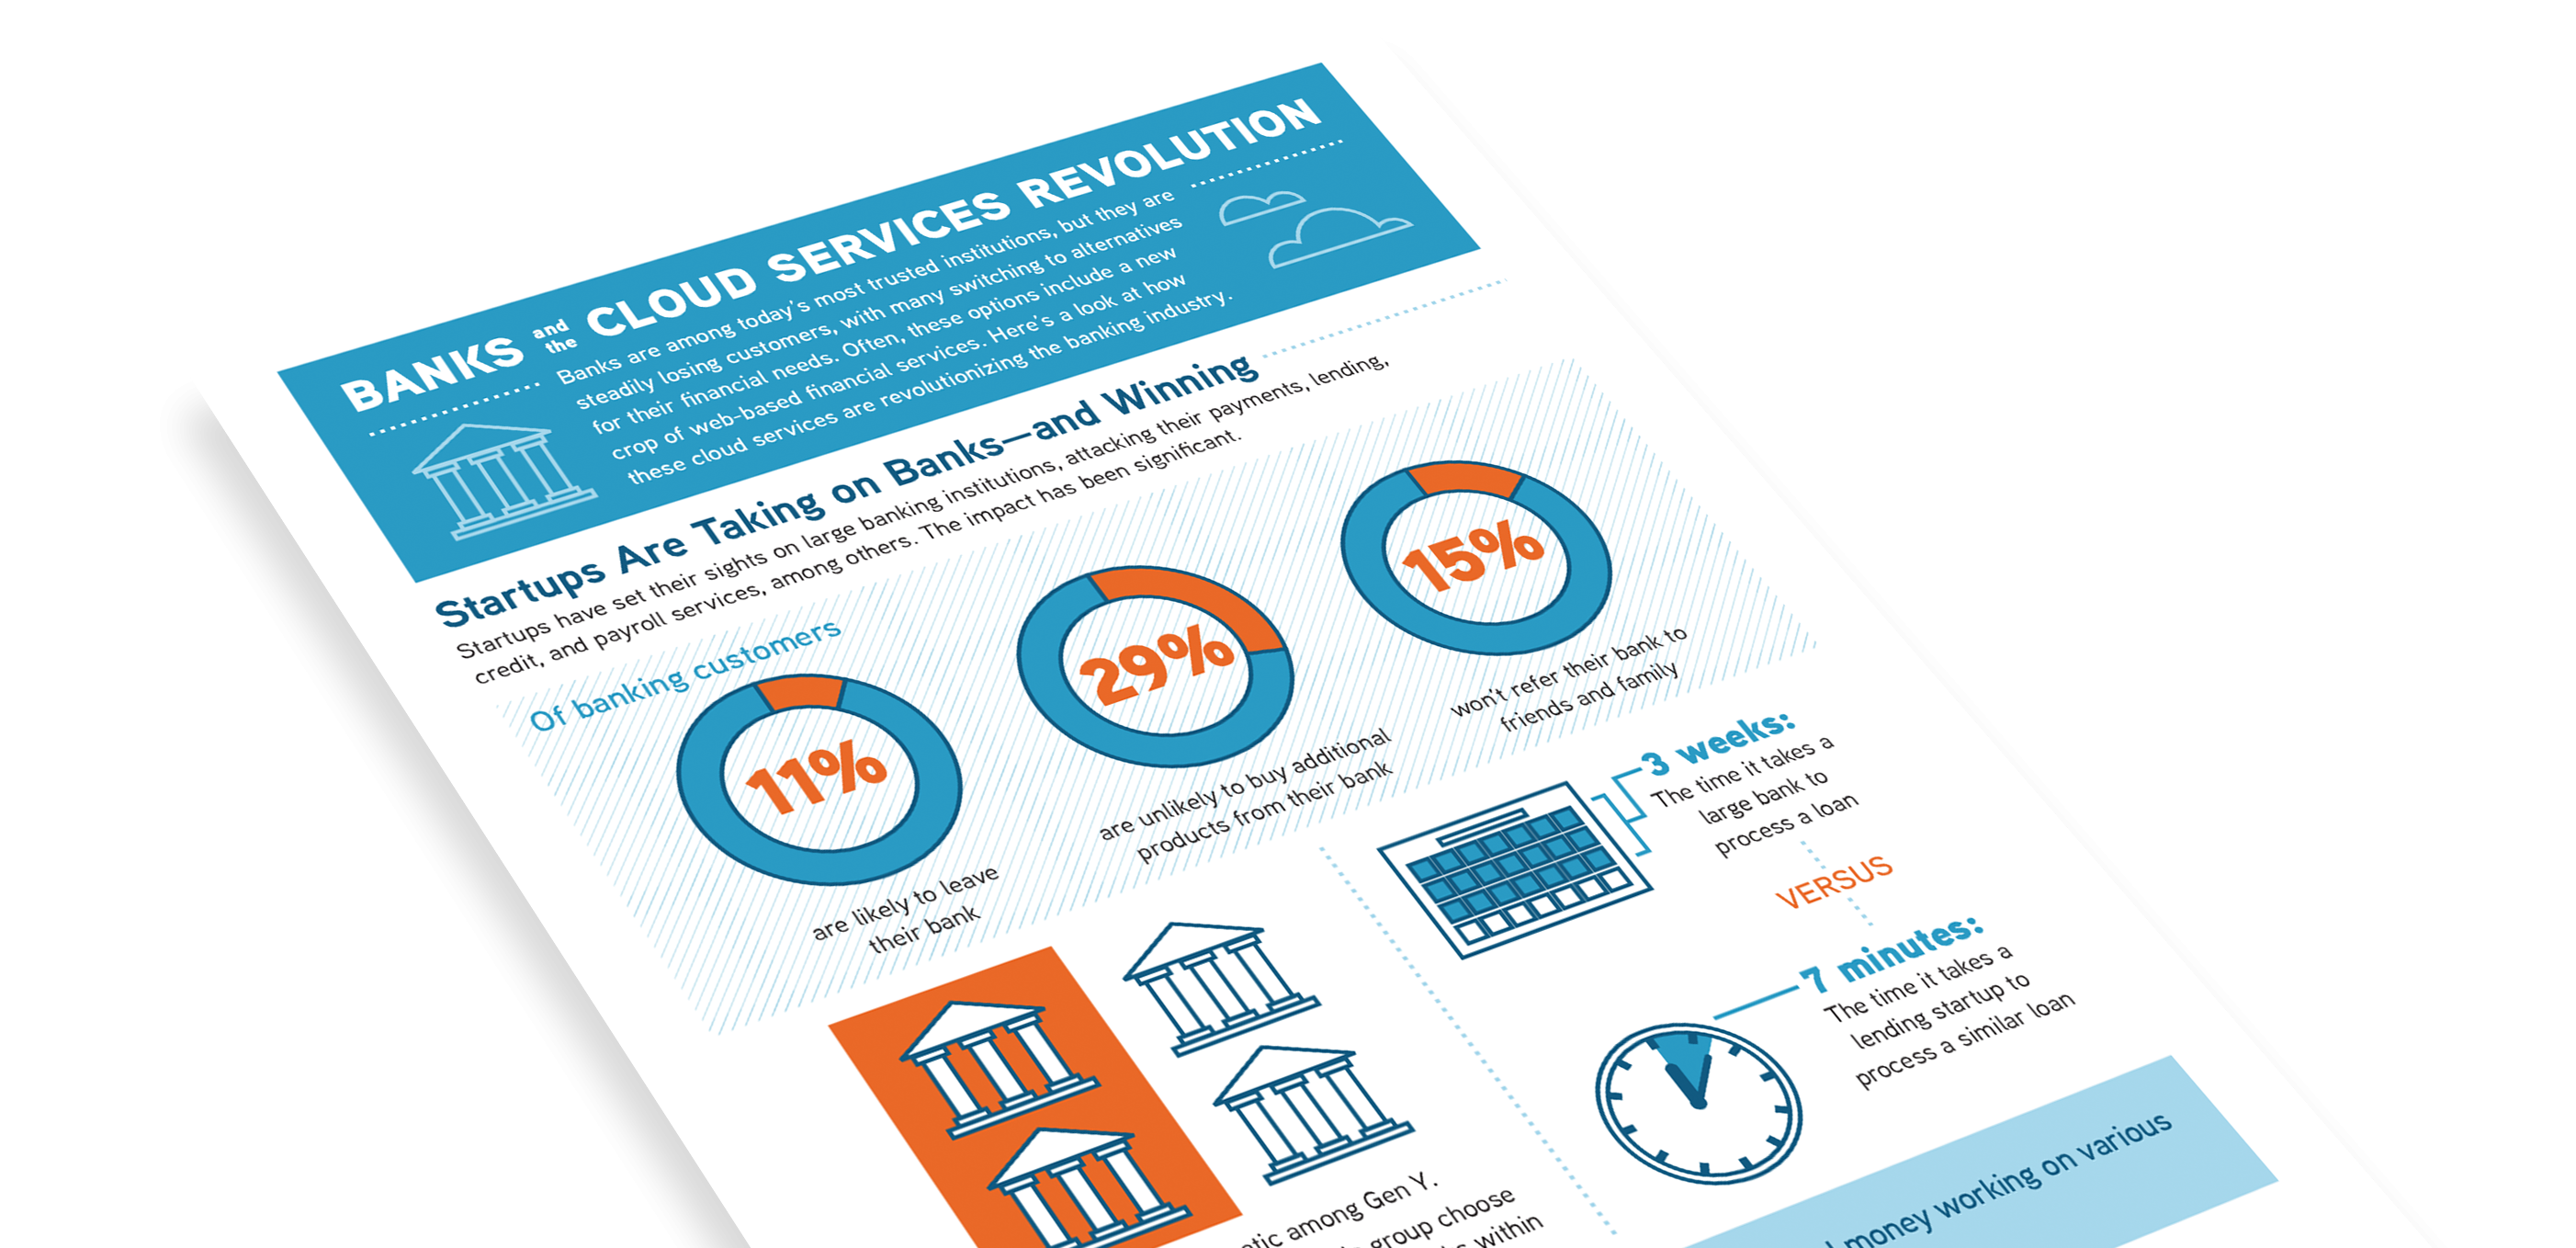 Banks and the Cloud Services Revolution